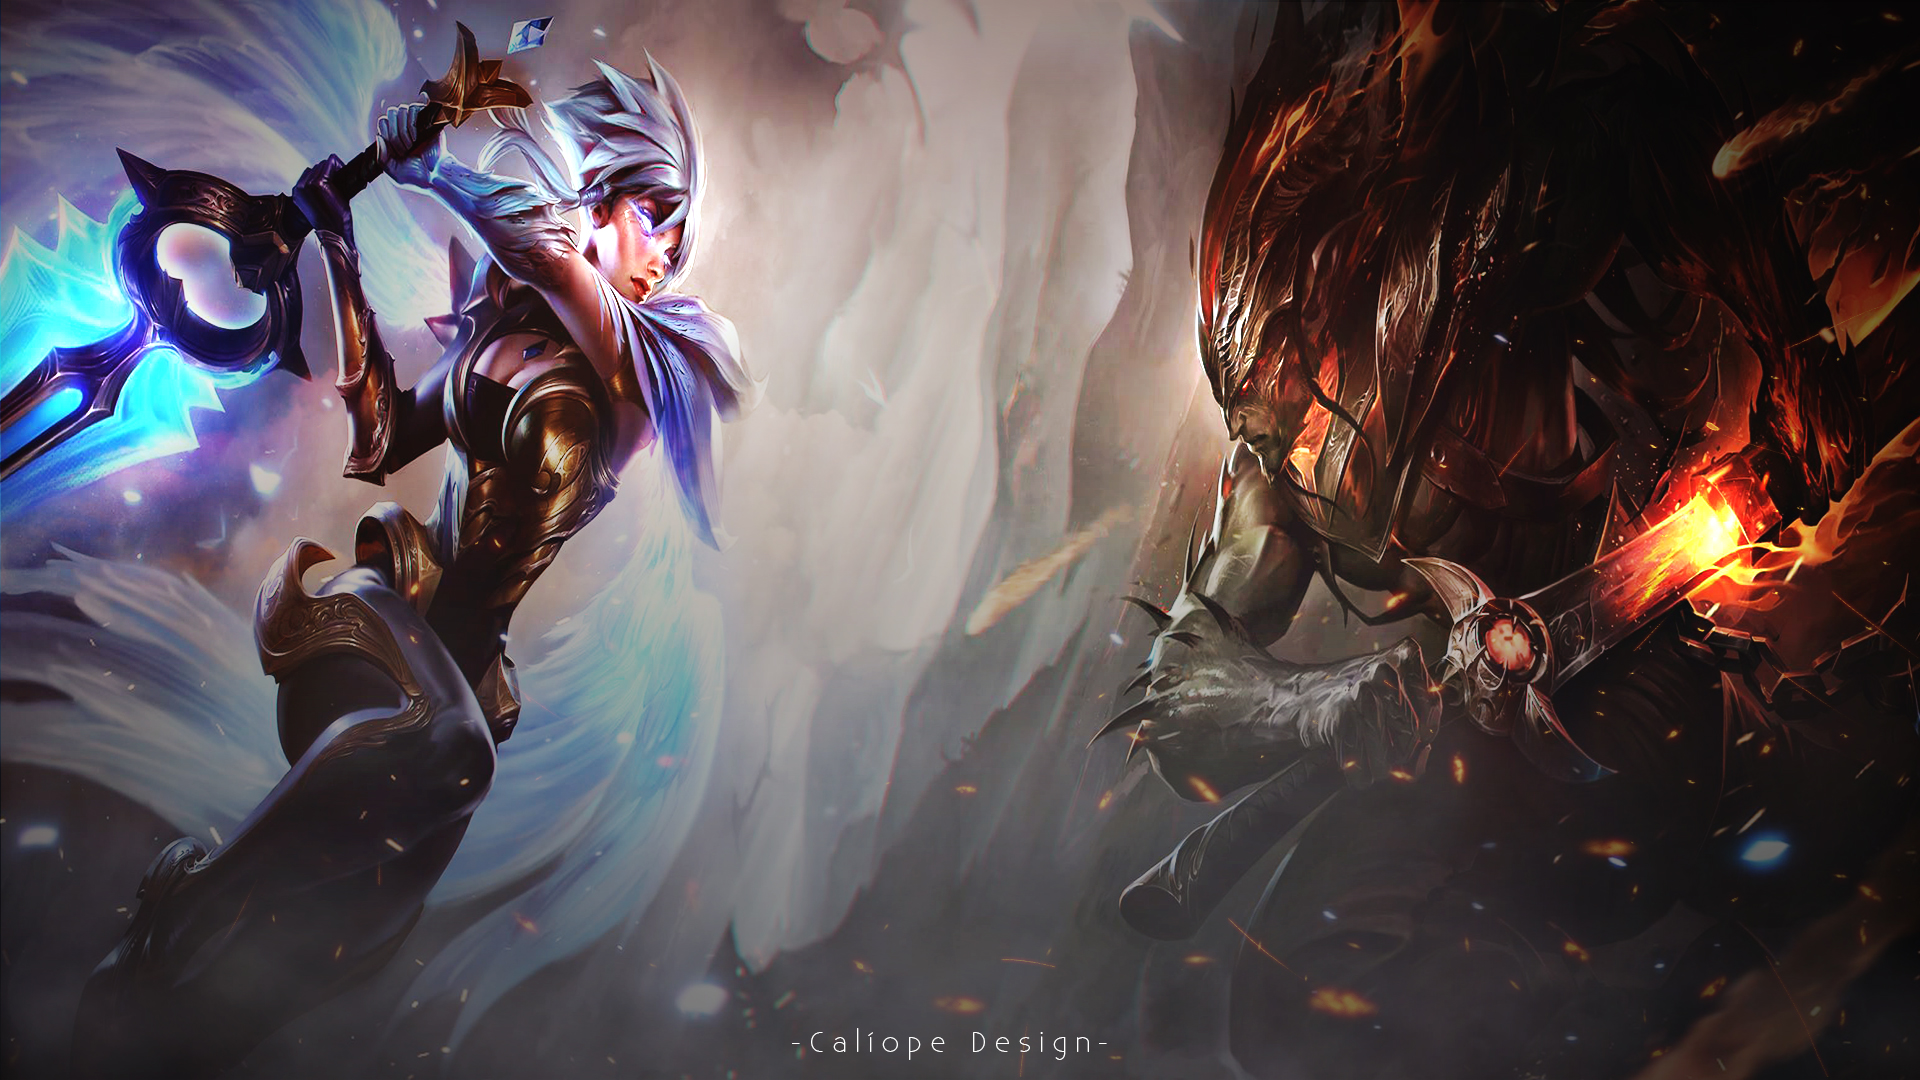 Wallpaper Riven and Yasuo by MissCaliope on DeviantArt